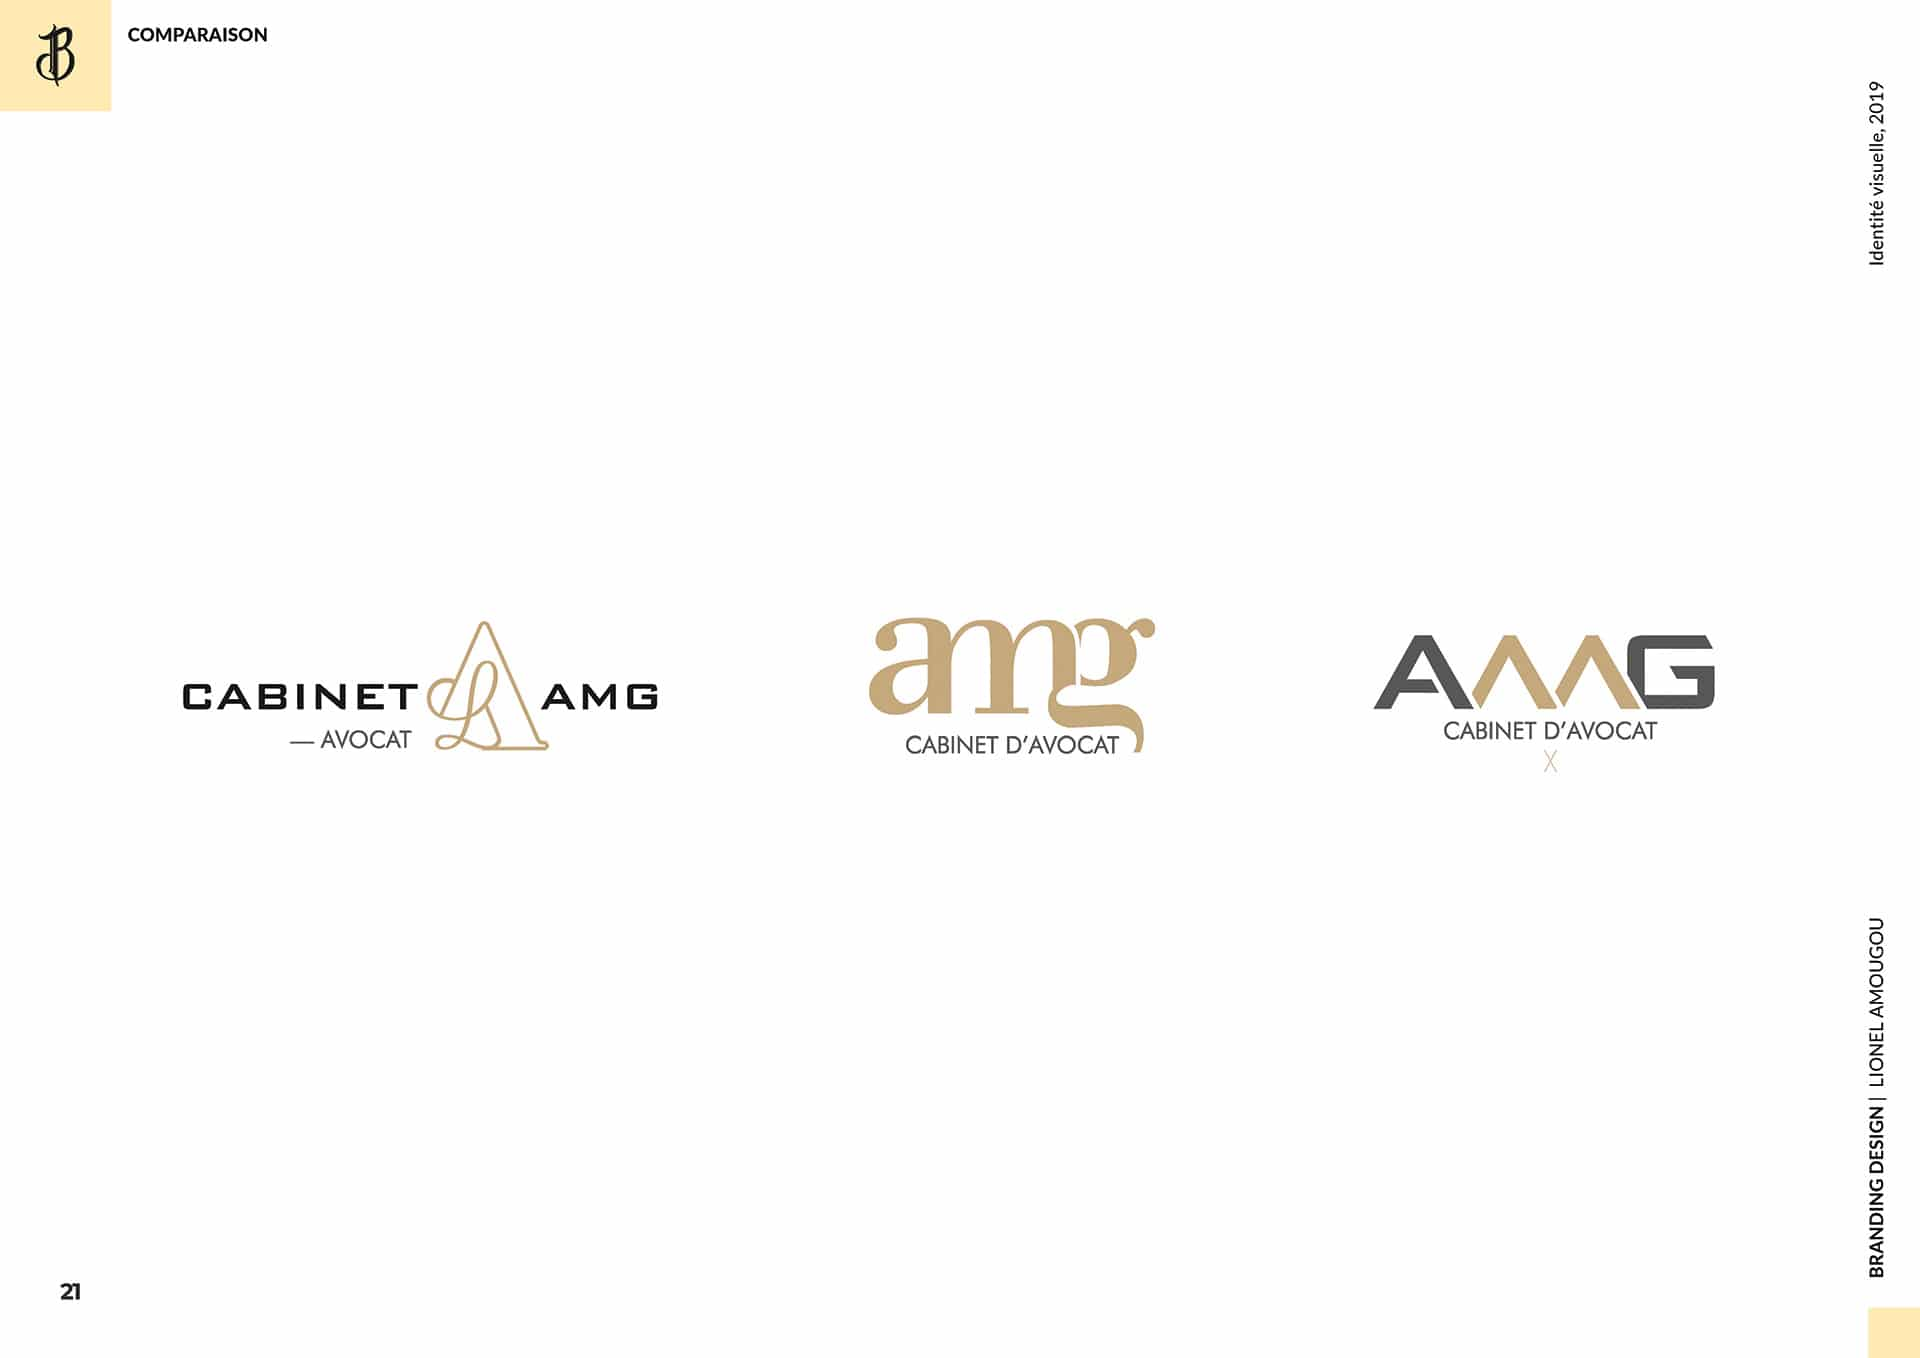 AMG's visual communication